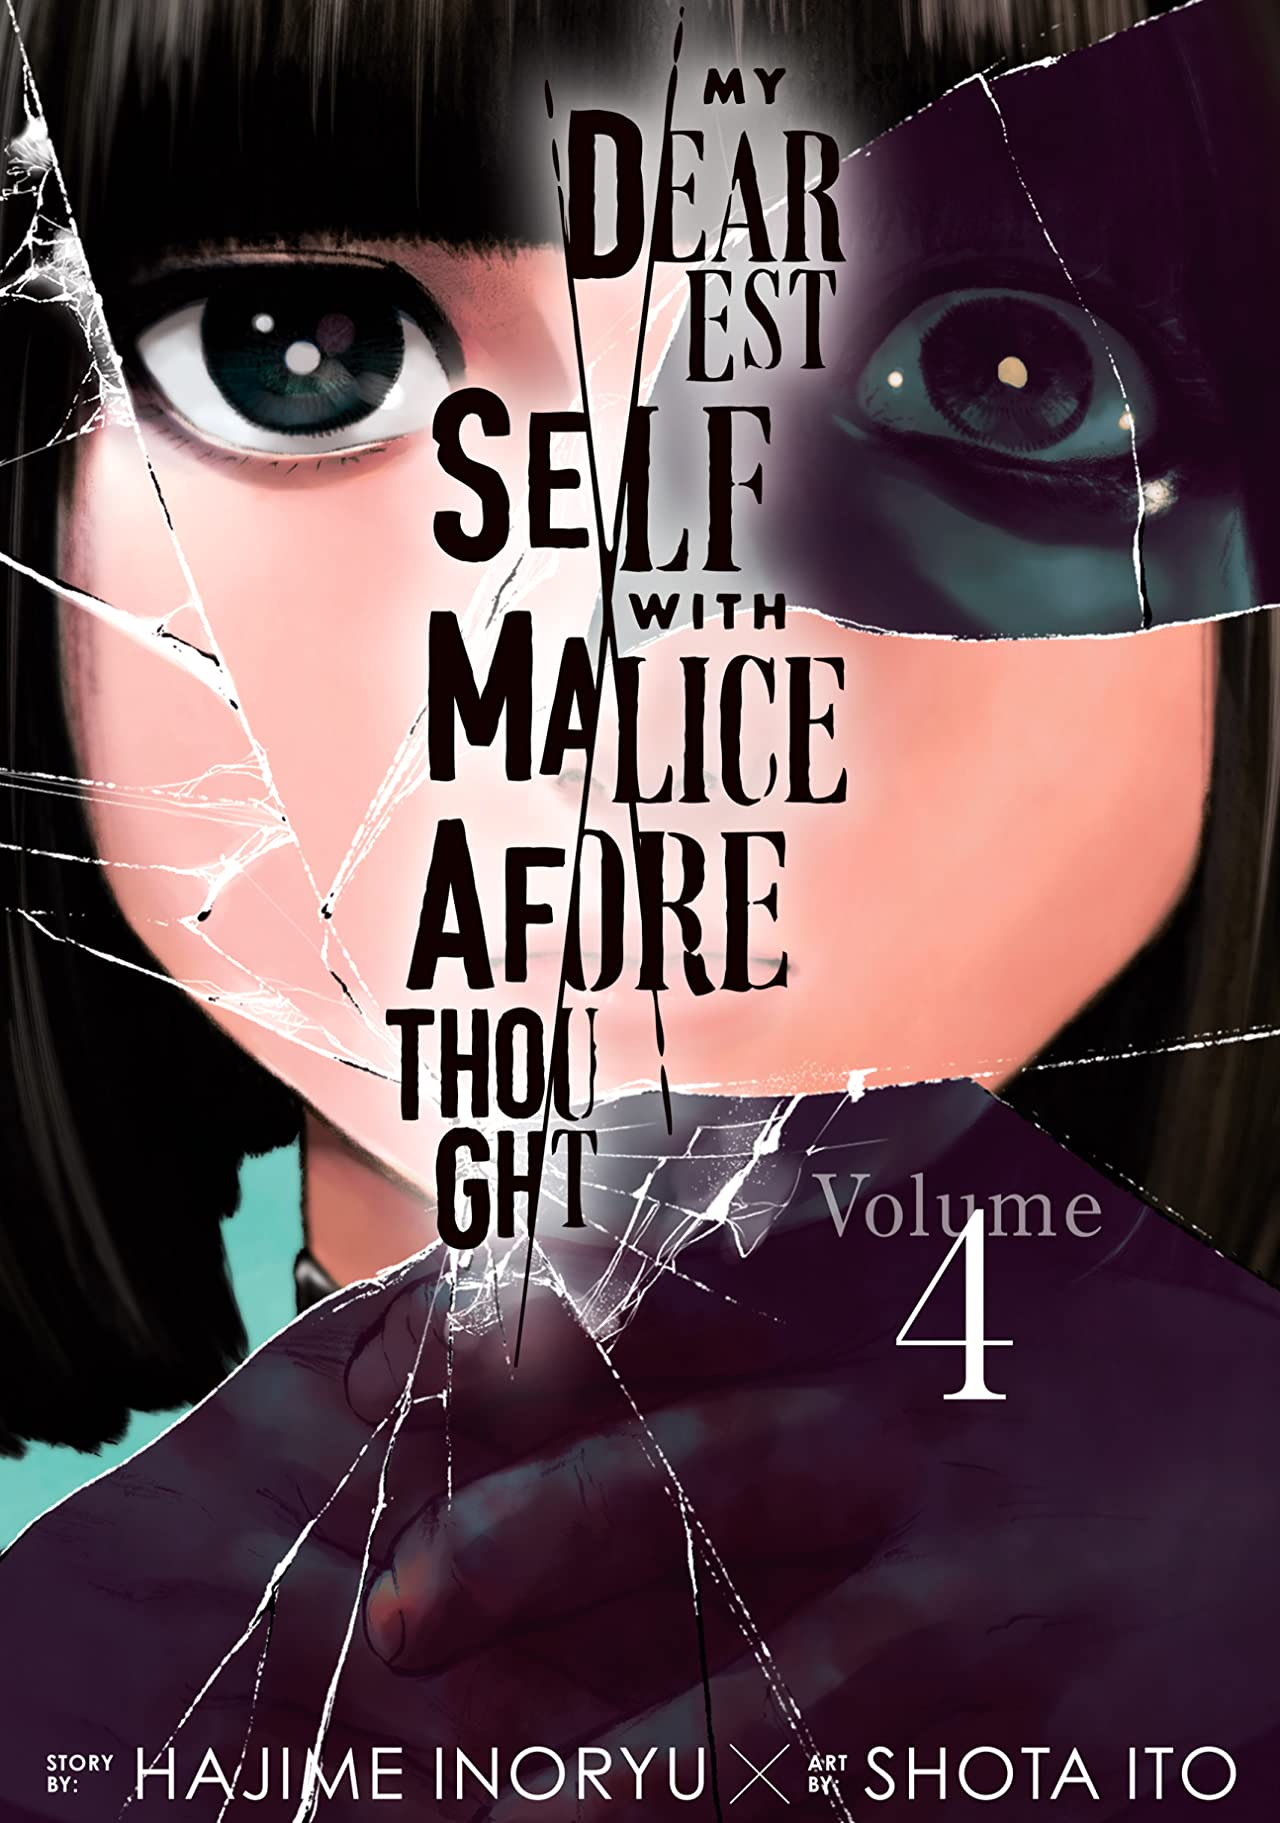 My Dearest Self with Malice Aforethought Tome 4